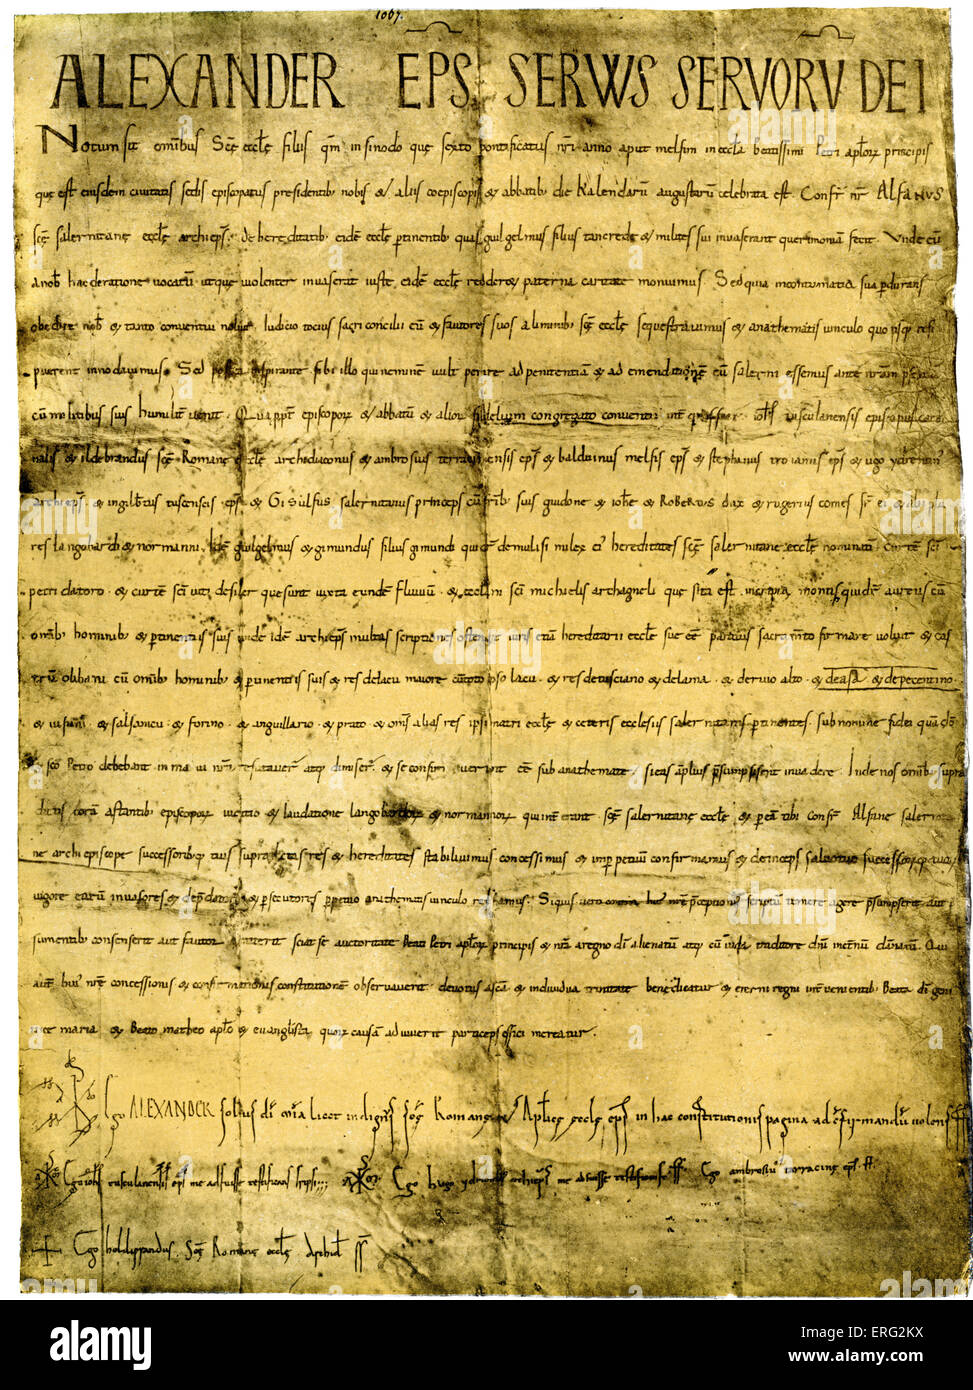 Papal bull of Pope Alexander II signed personally by arch-deacon Hildebrand, later Pope Gregory VII.  Pope Alexander - Stock Image